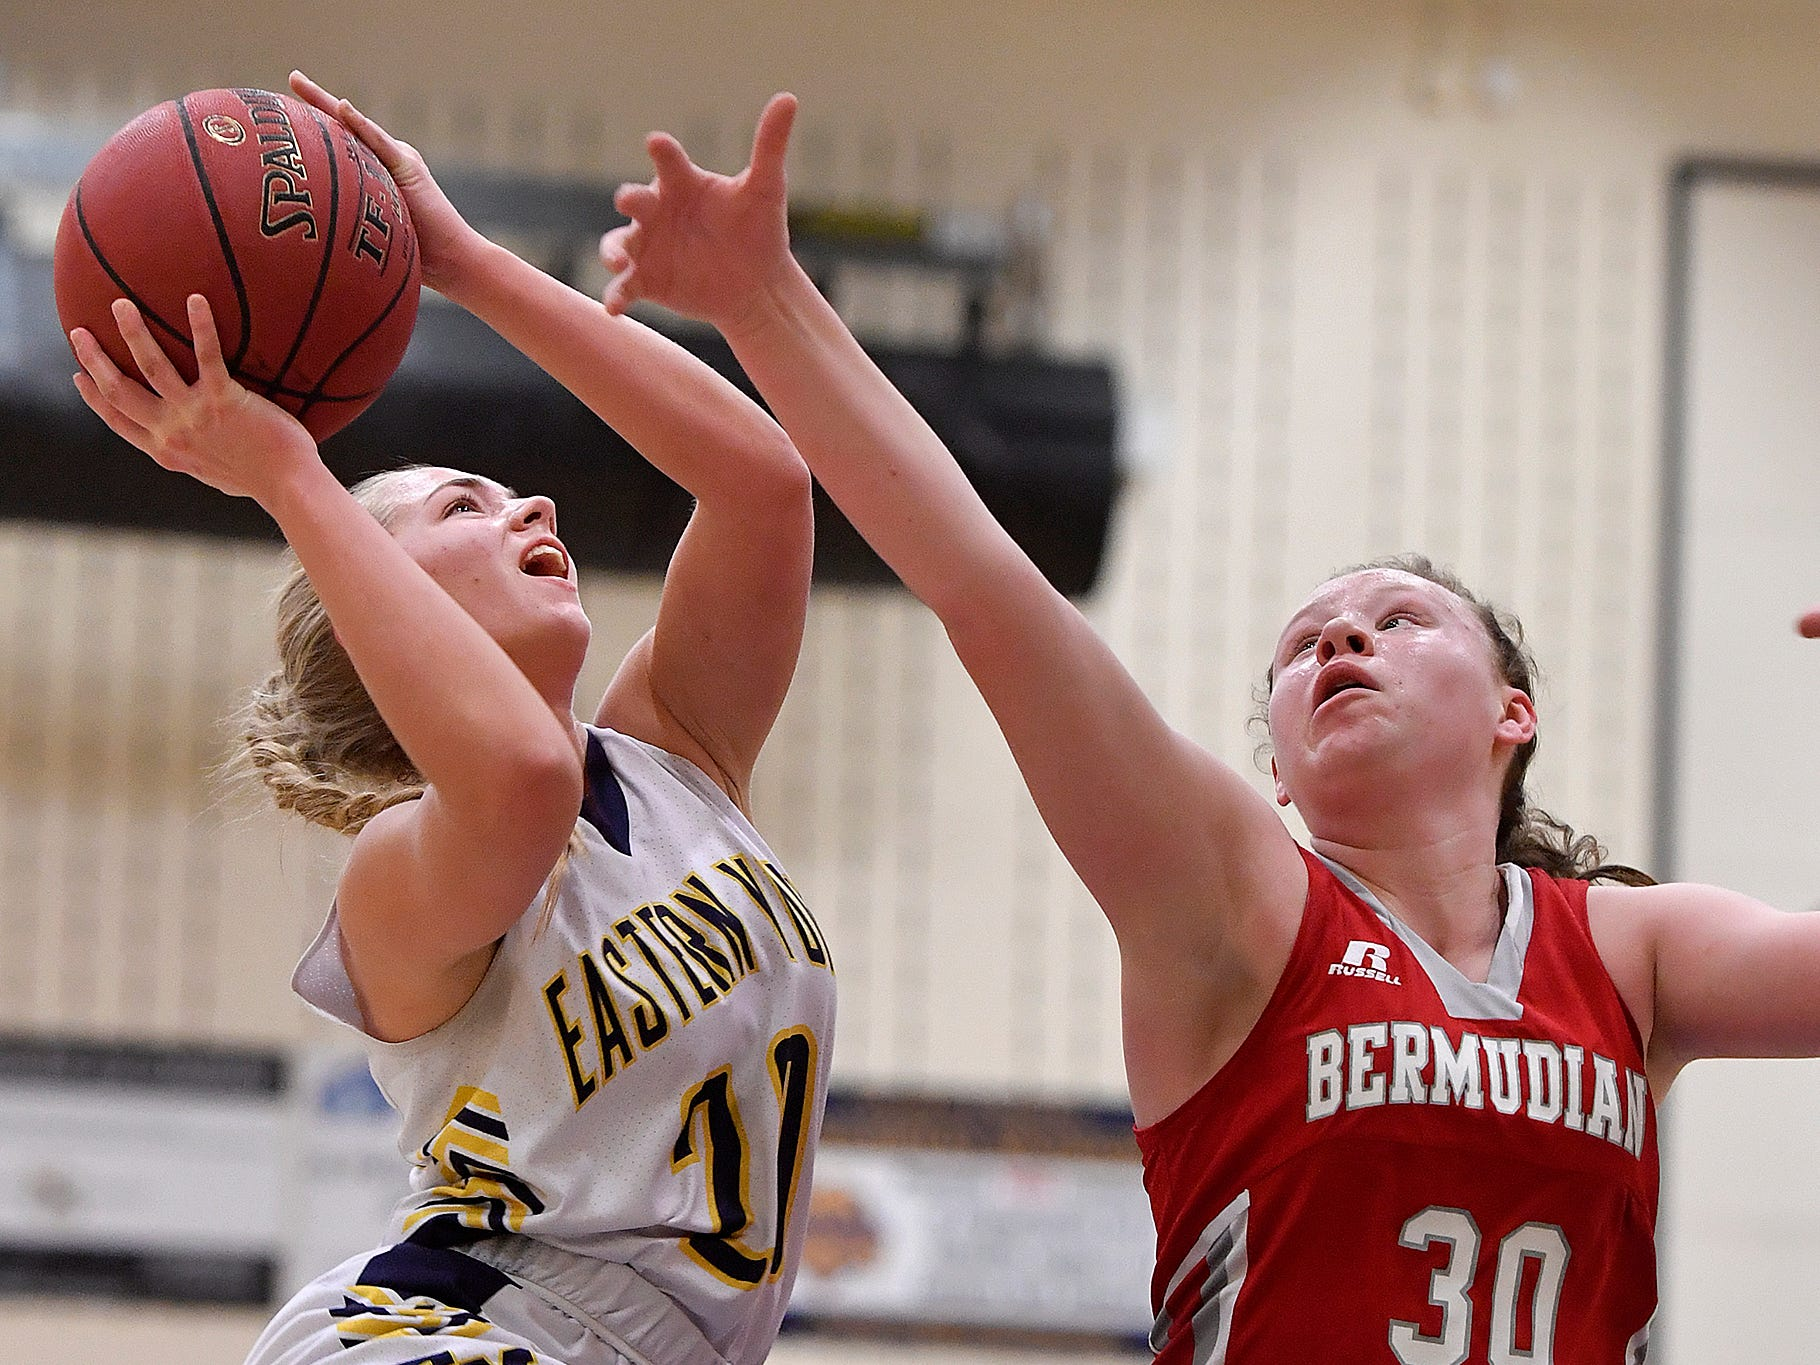 Breana Grim of Eastern York drives to the basket while covered by Hannah Chenault of Bermudian Springs during the District 3 Class 4-A fifth place basketball game, Thursday, Feb. 28, 2019.John A. Pavoncello photo